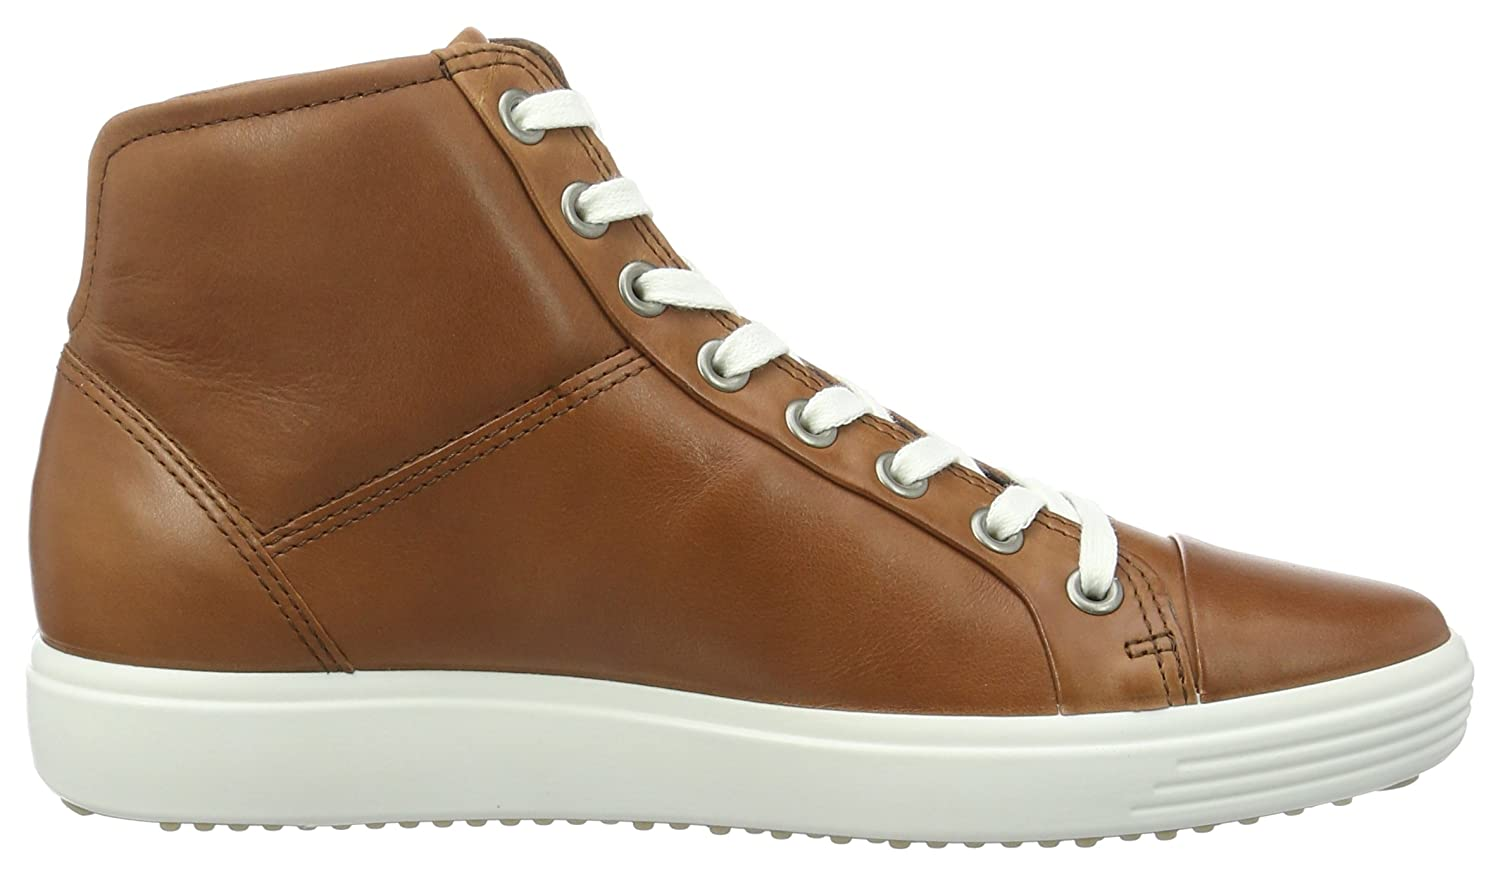 Damen Soft 7 Ladies HighTop Grün Tarmac 1543 38 EU Ecco